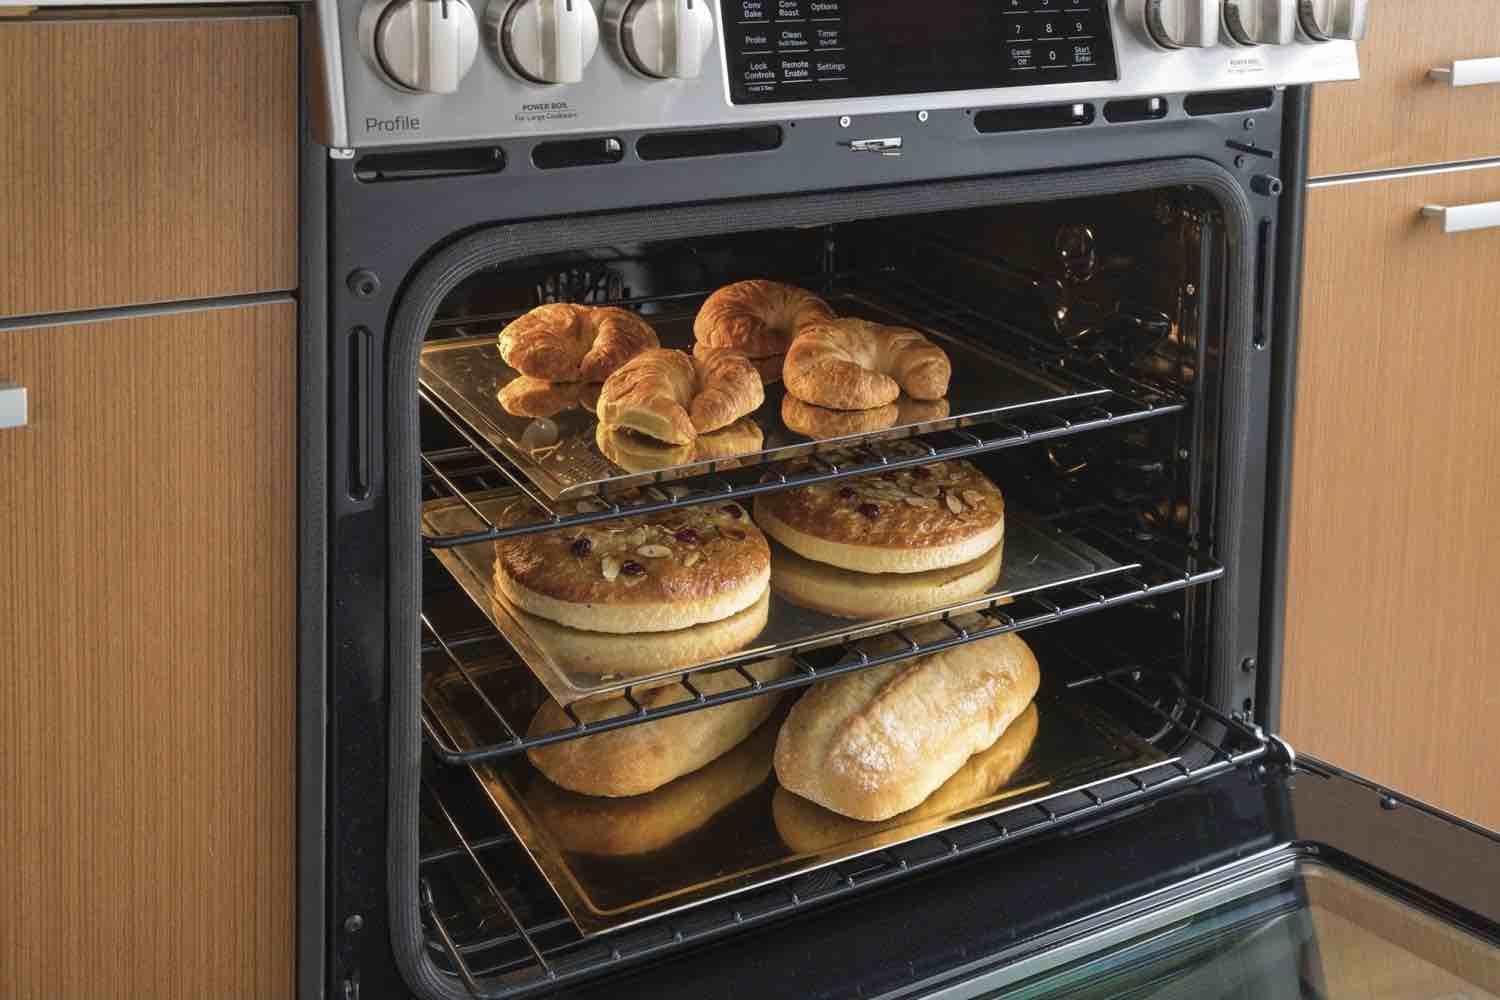 ge-slide-in-range-oven-1